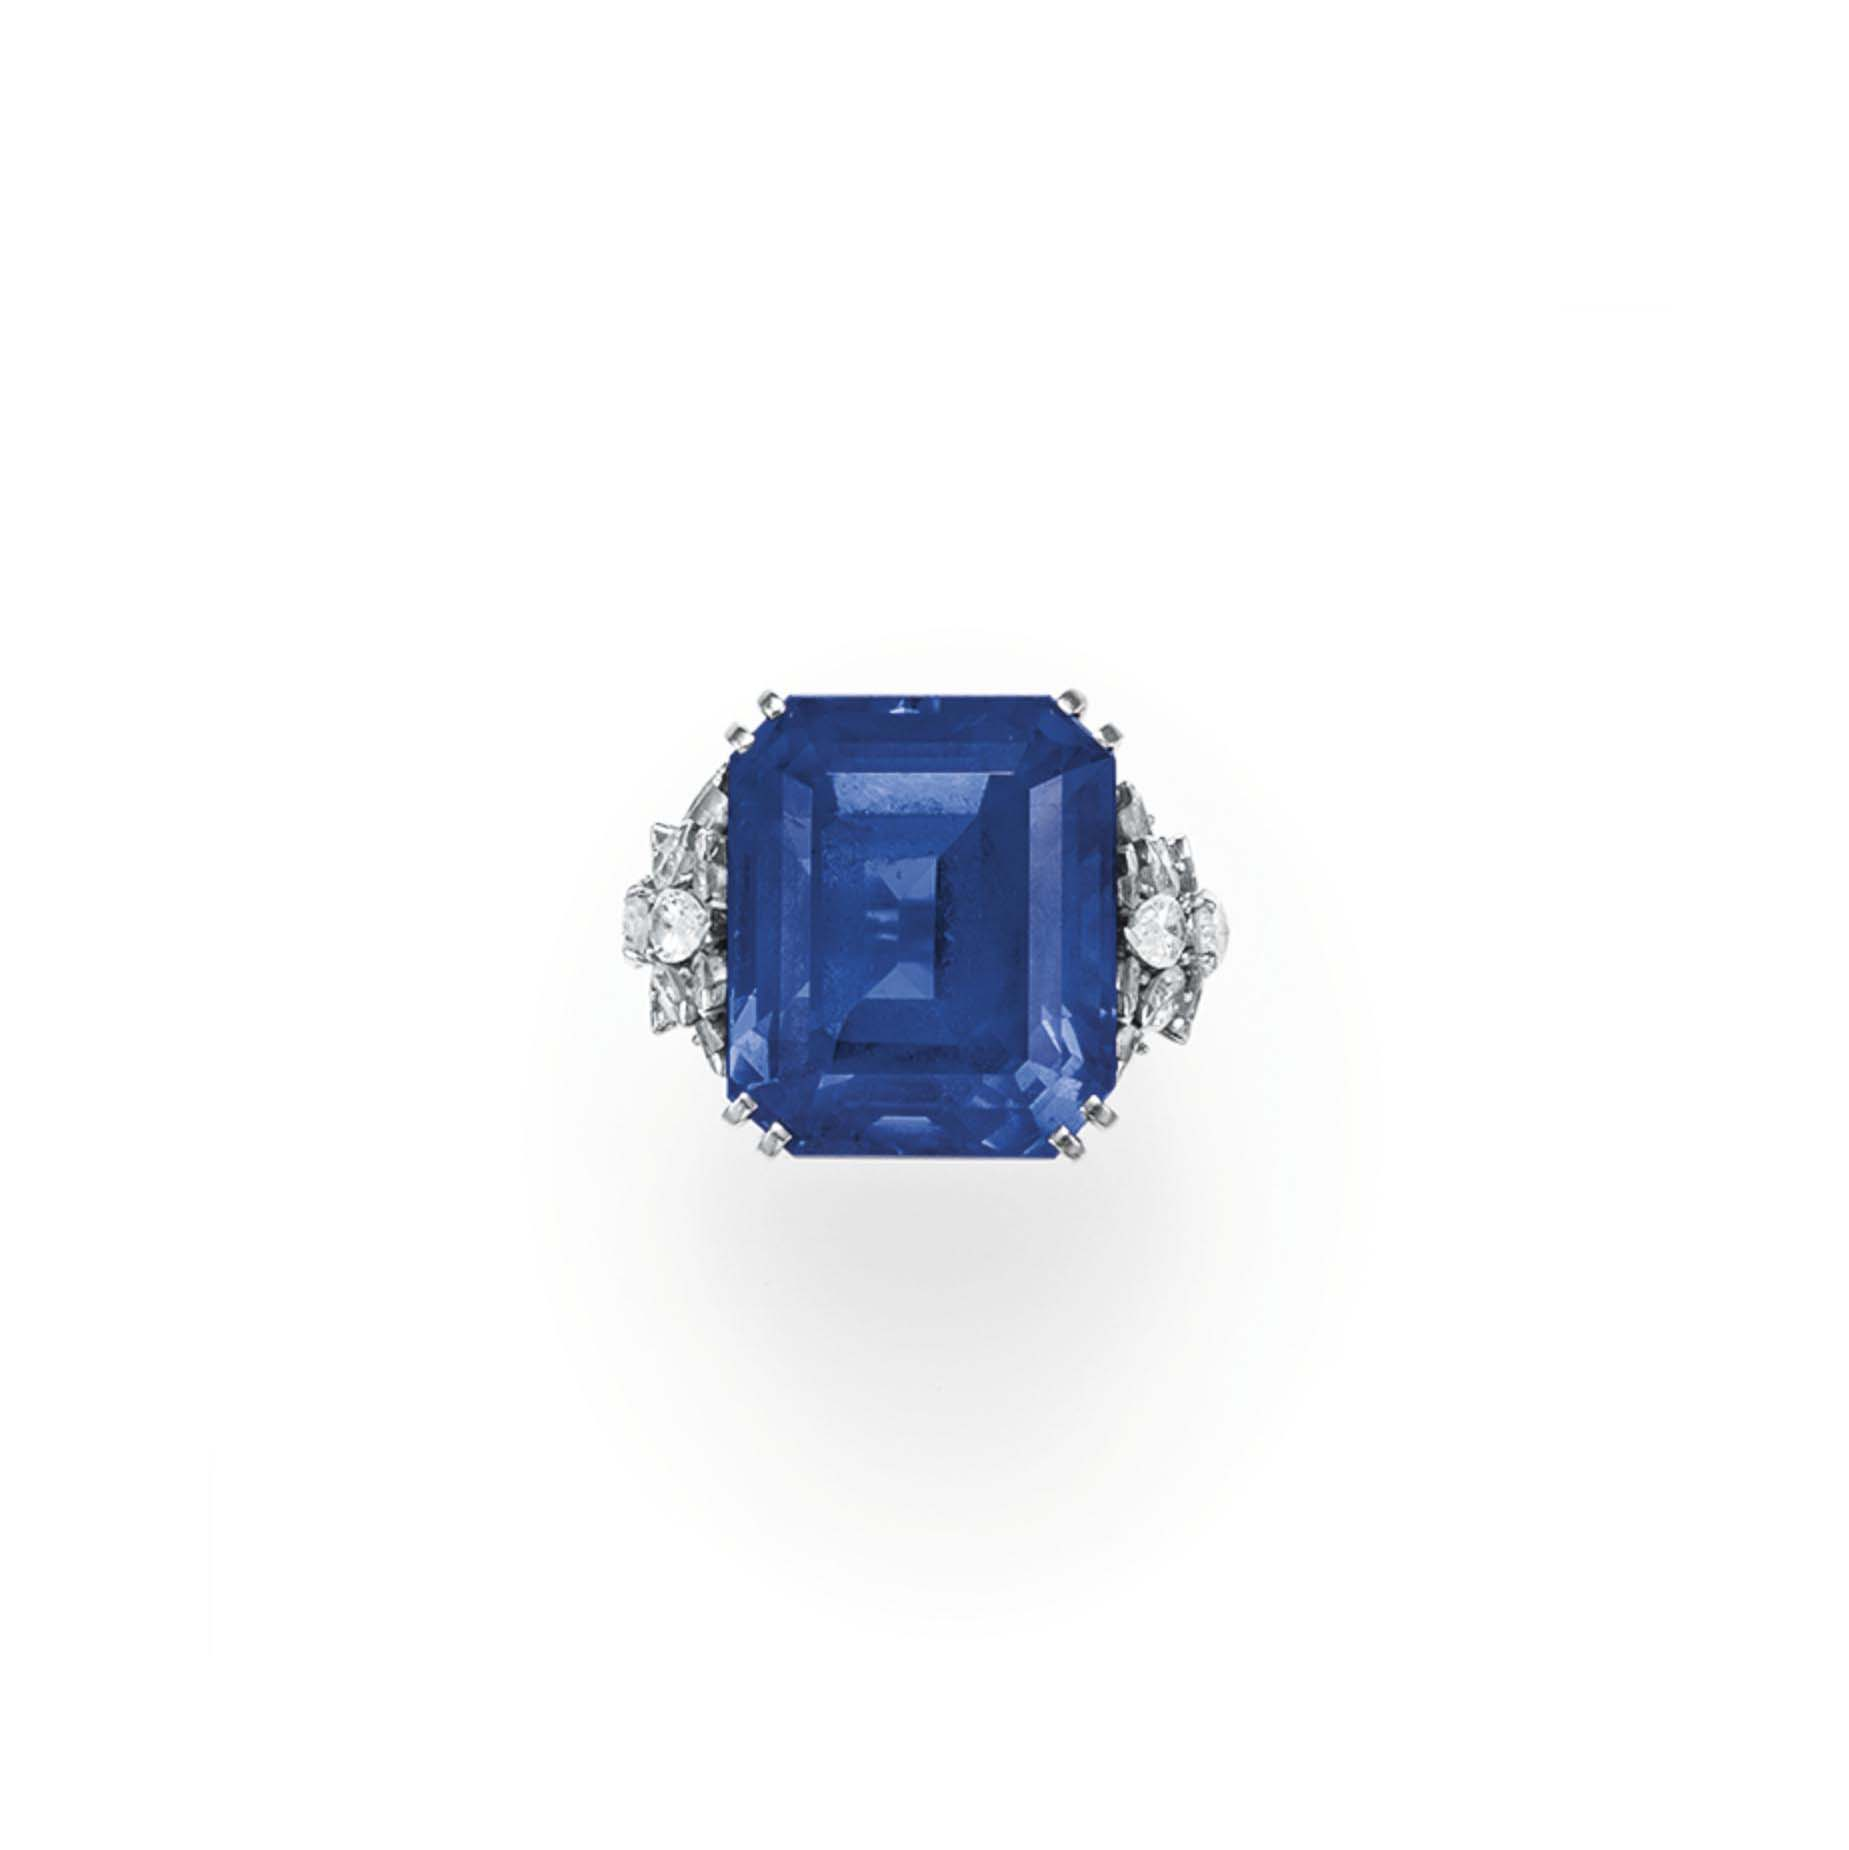 AN IMPRESSIVE SAPPHIRE AND DIAMOND RING